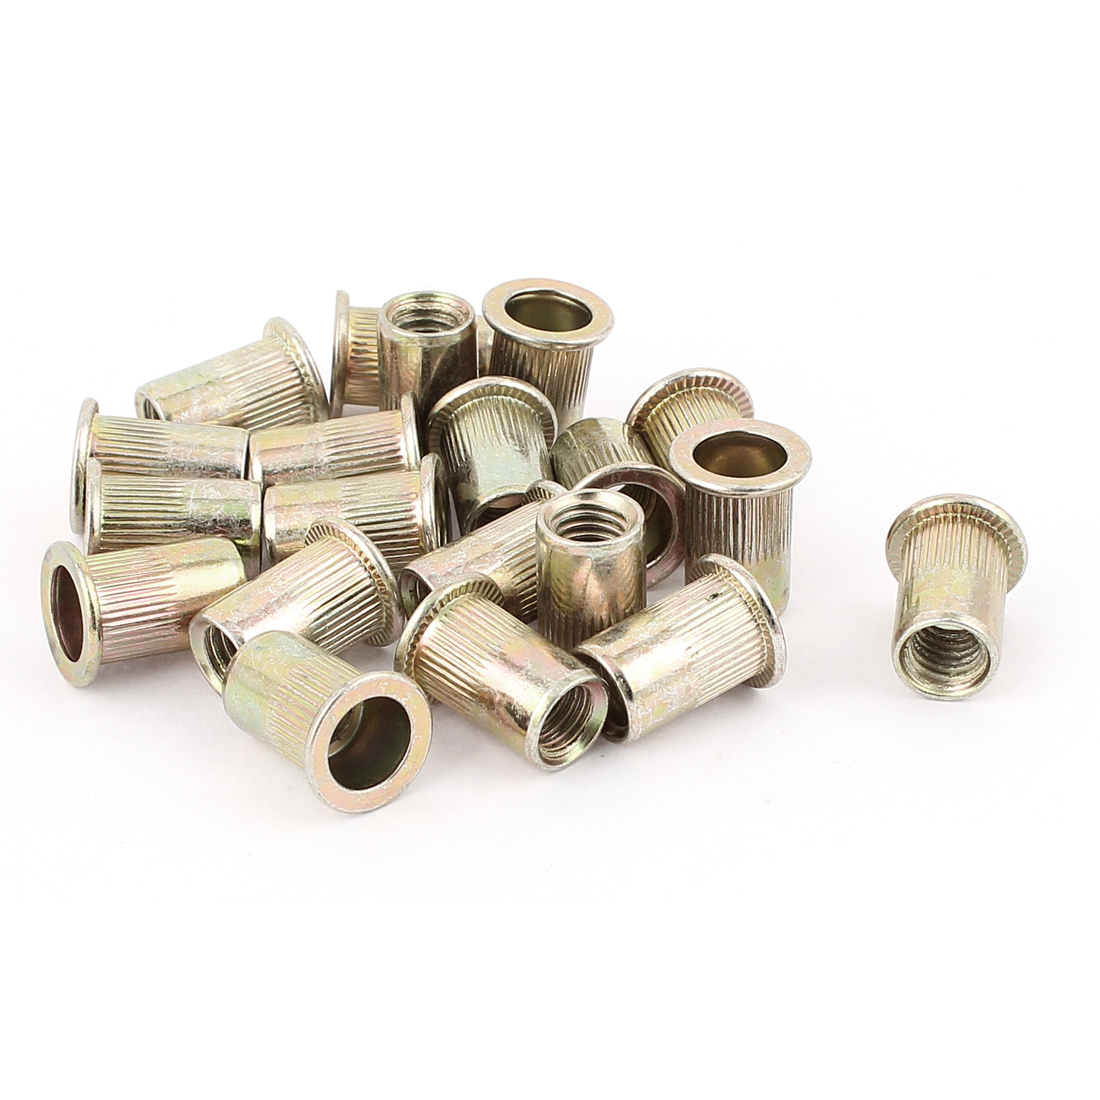 8mm Thread Dia 18mm Long Metal Rivet Nut Insert Nutsert Gold Tone 20Pcs